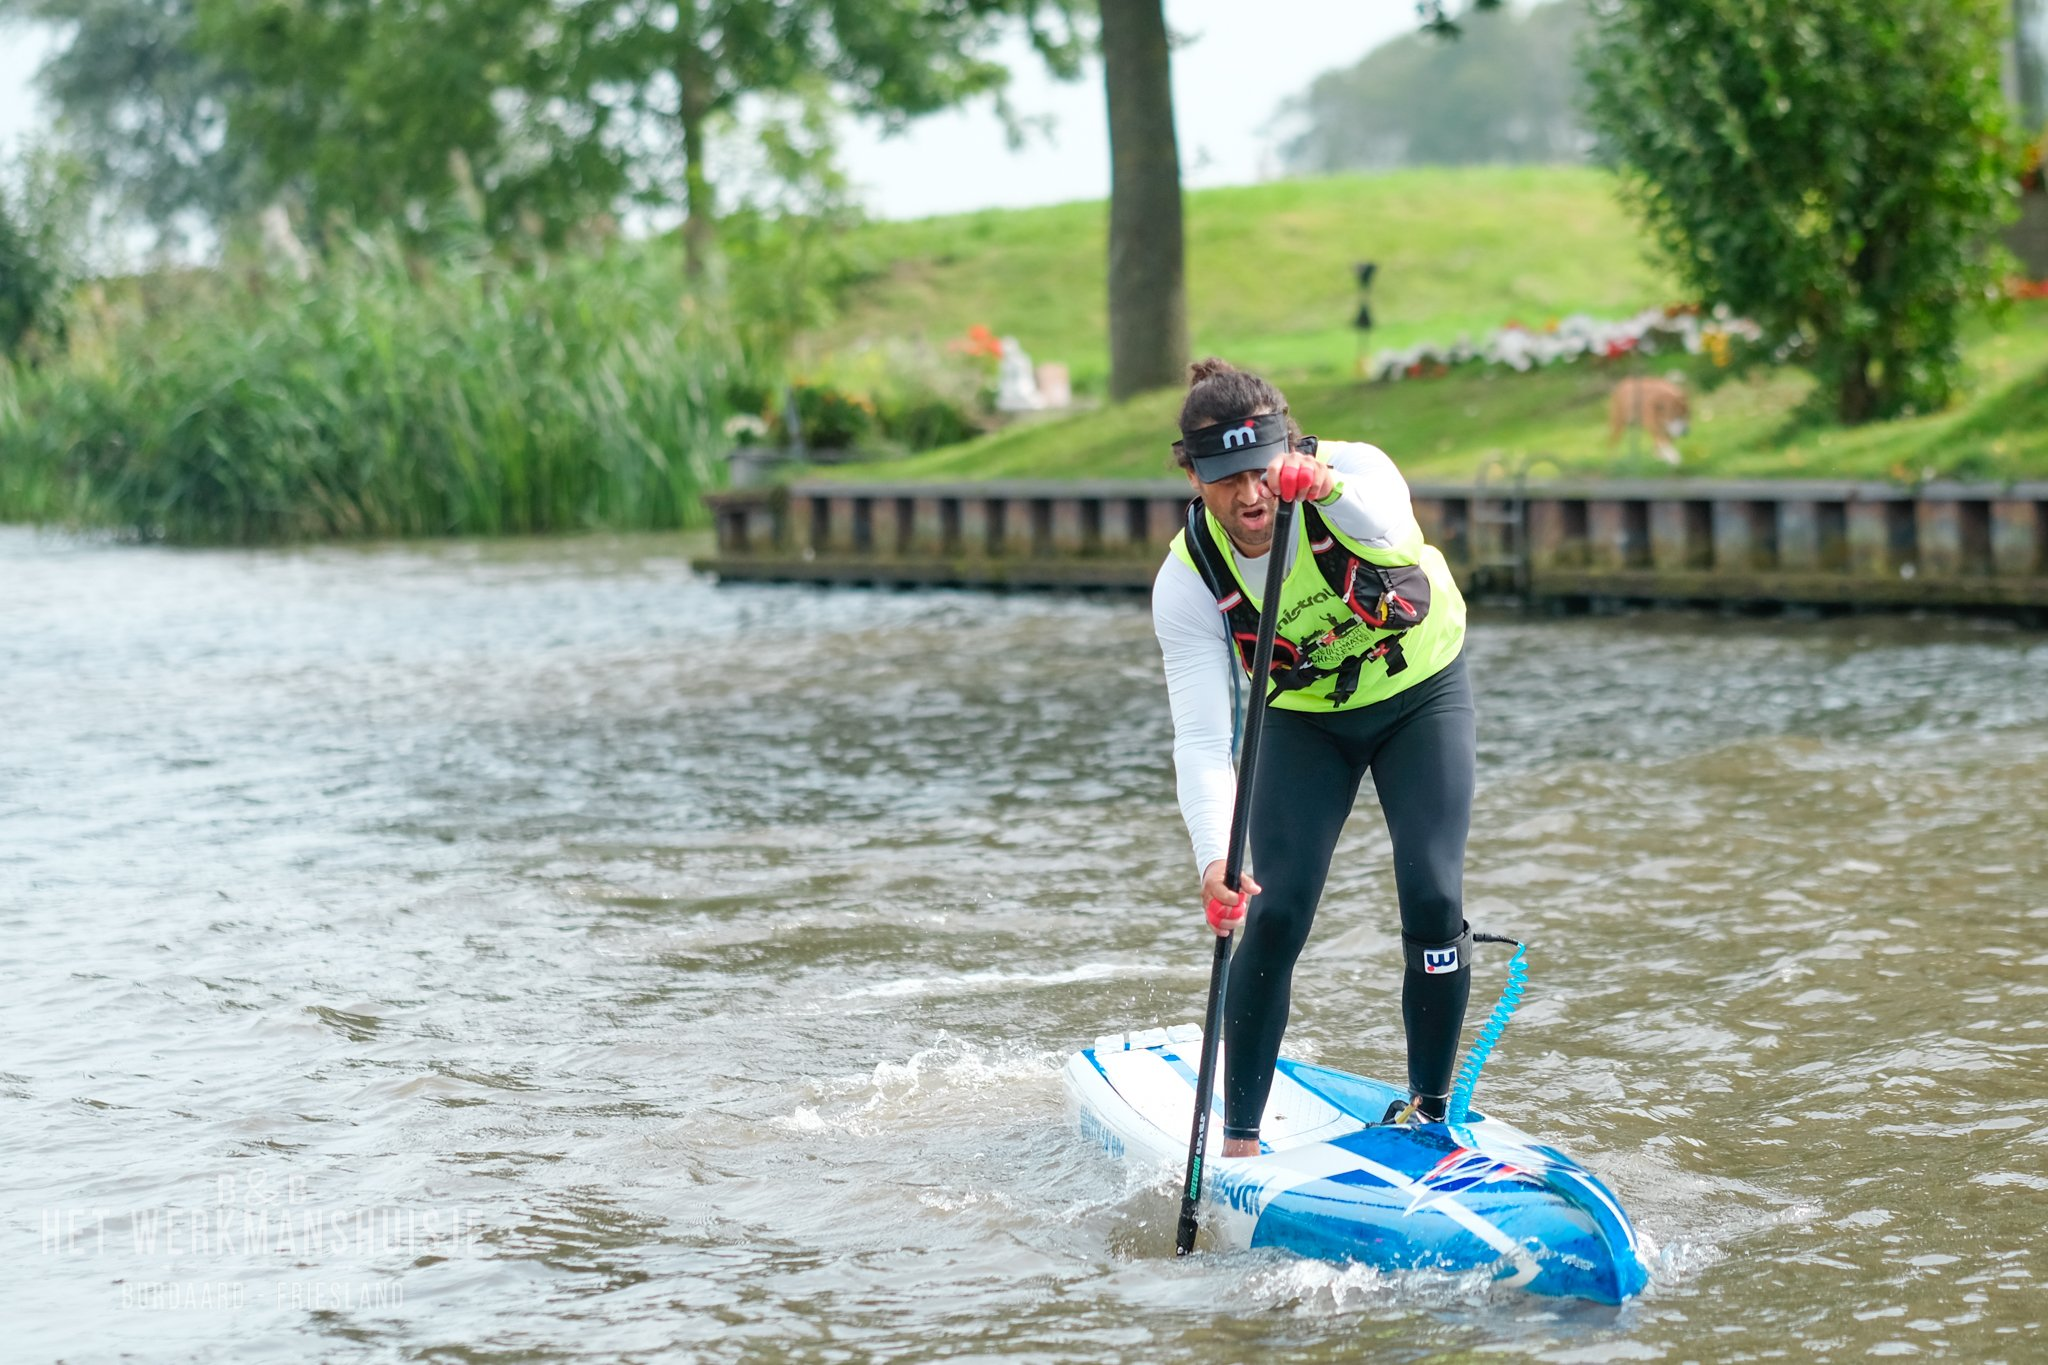 Watersporten - supboard huren in Burdaard